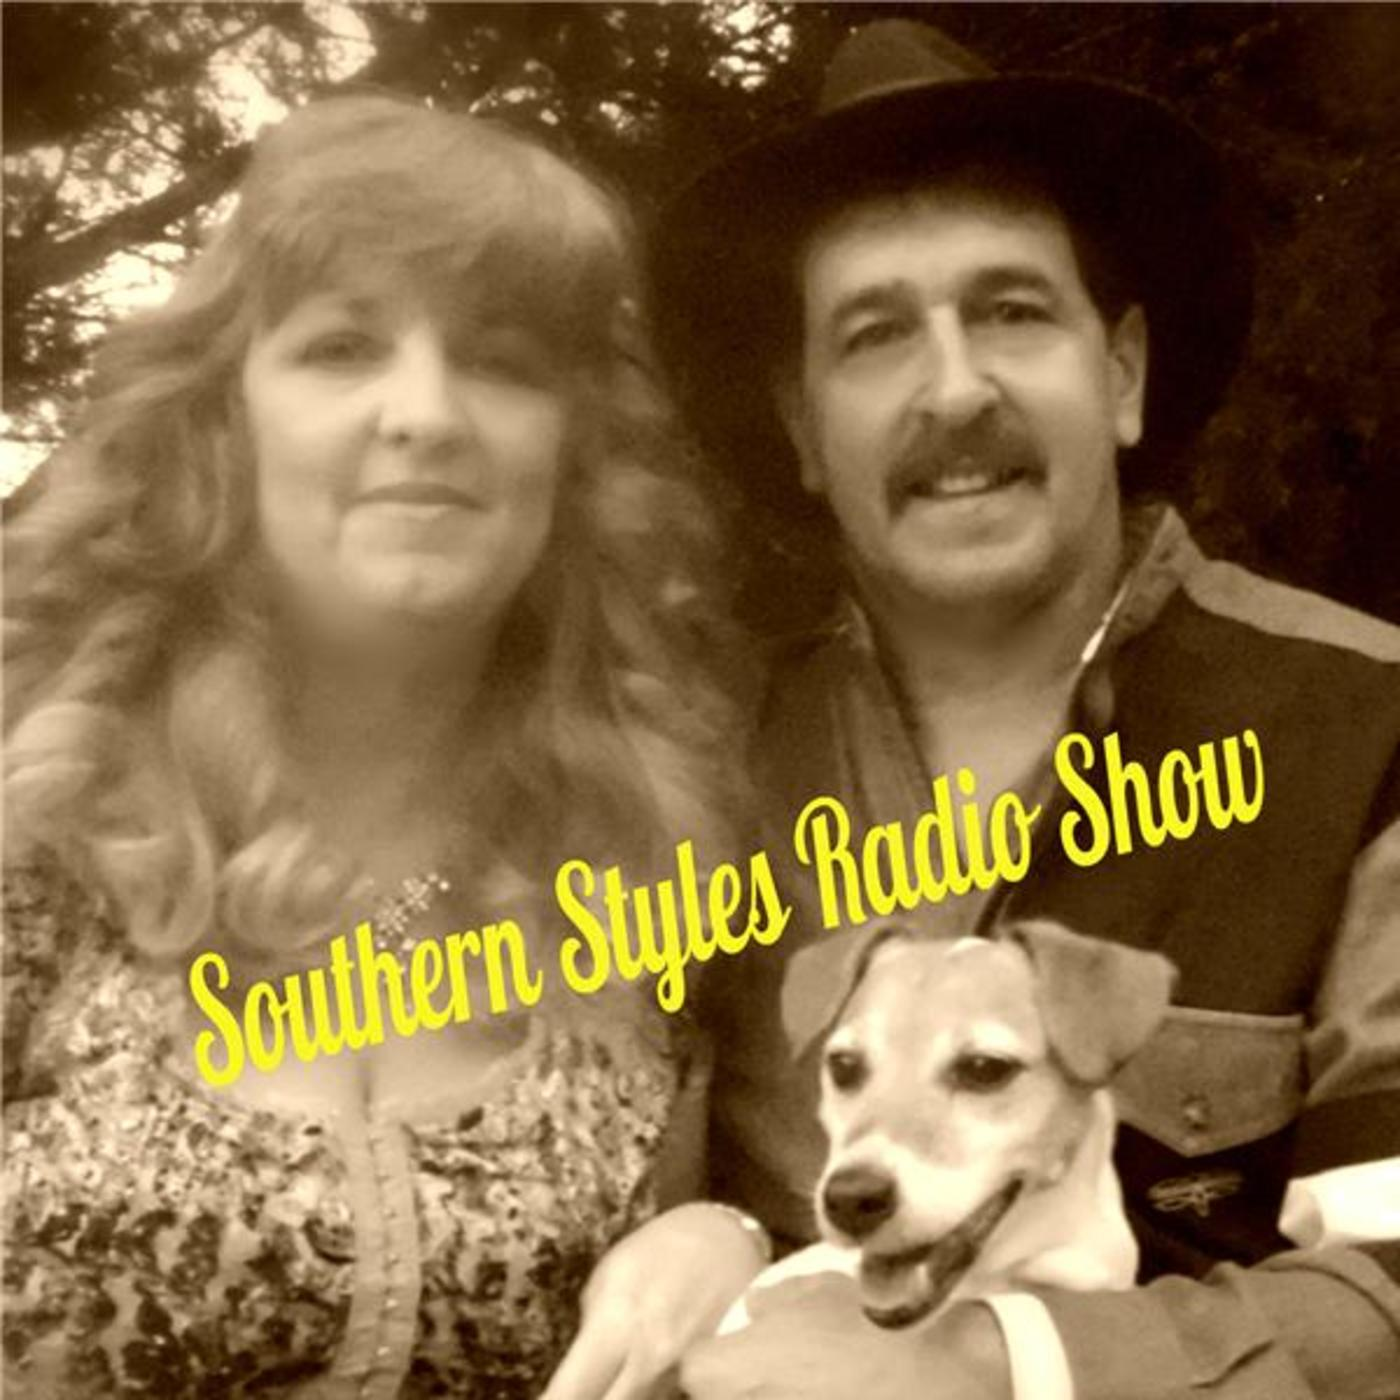 Southern Styles Radio Show